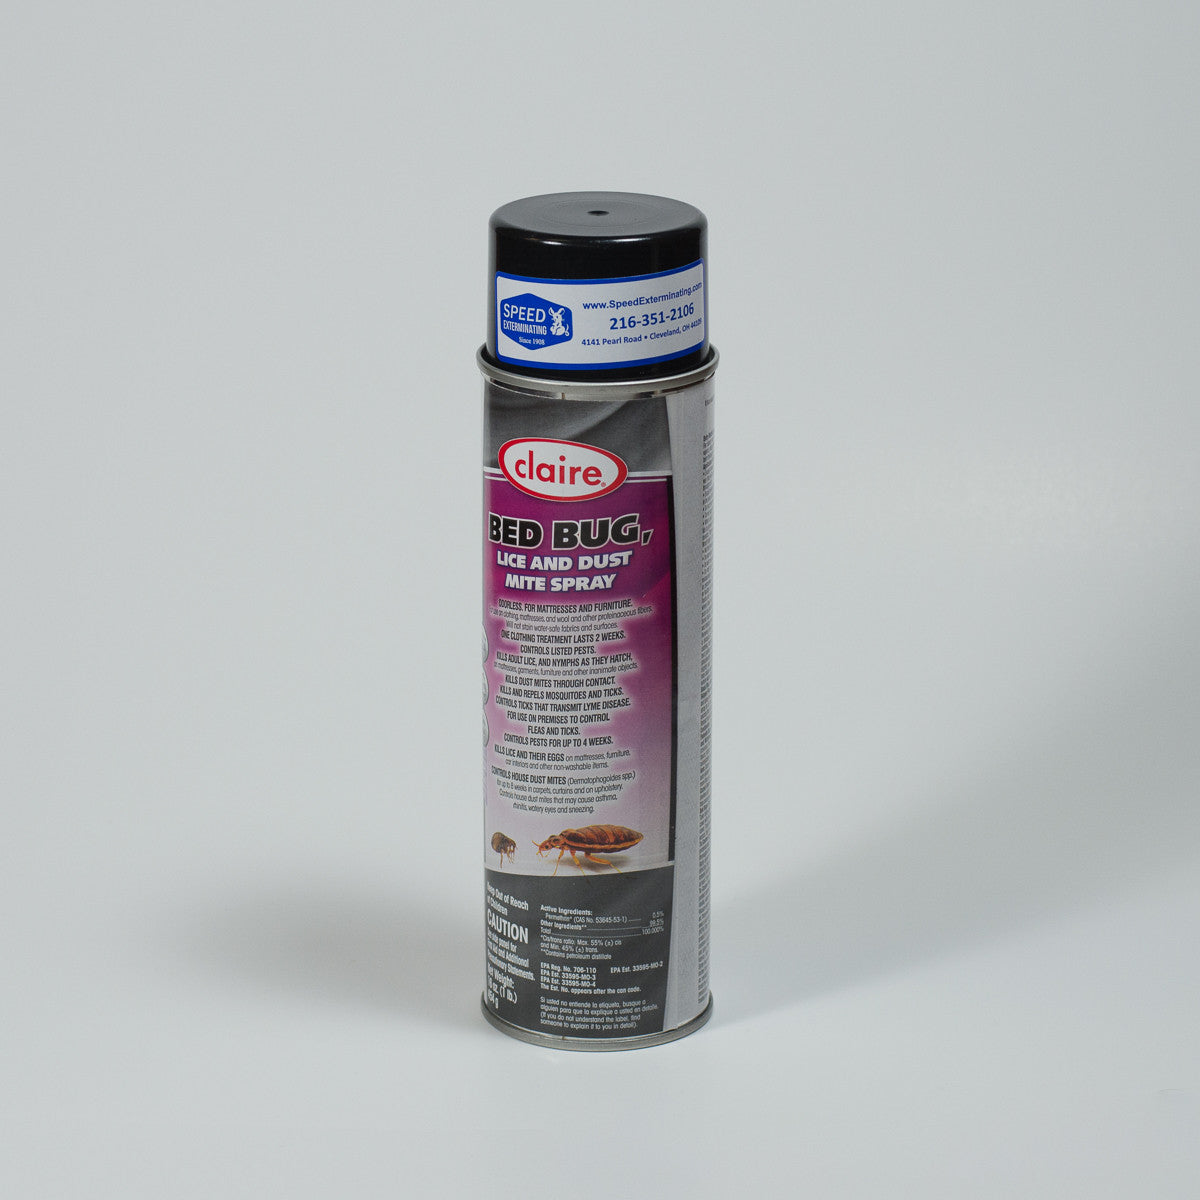 Claire Lice & Dust Mite Spray